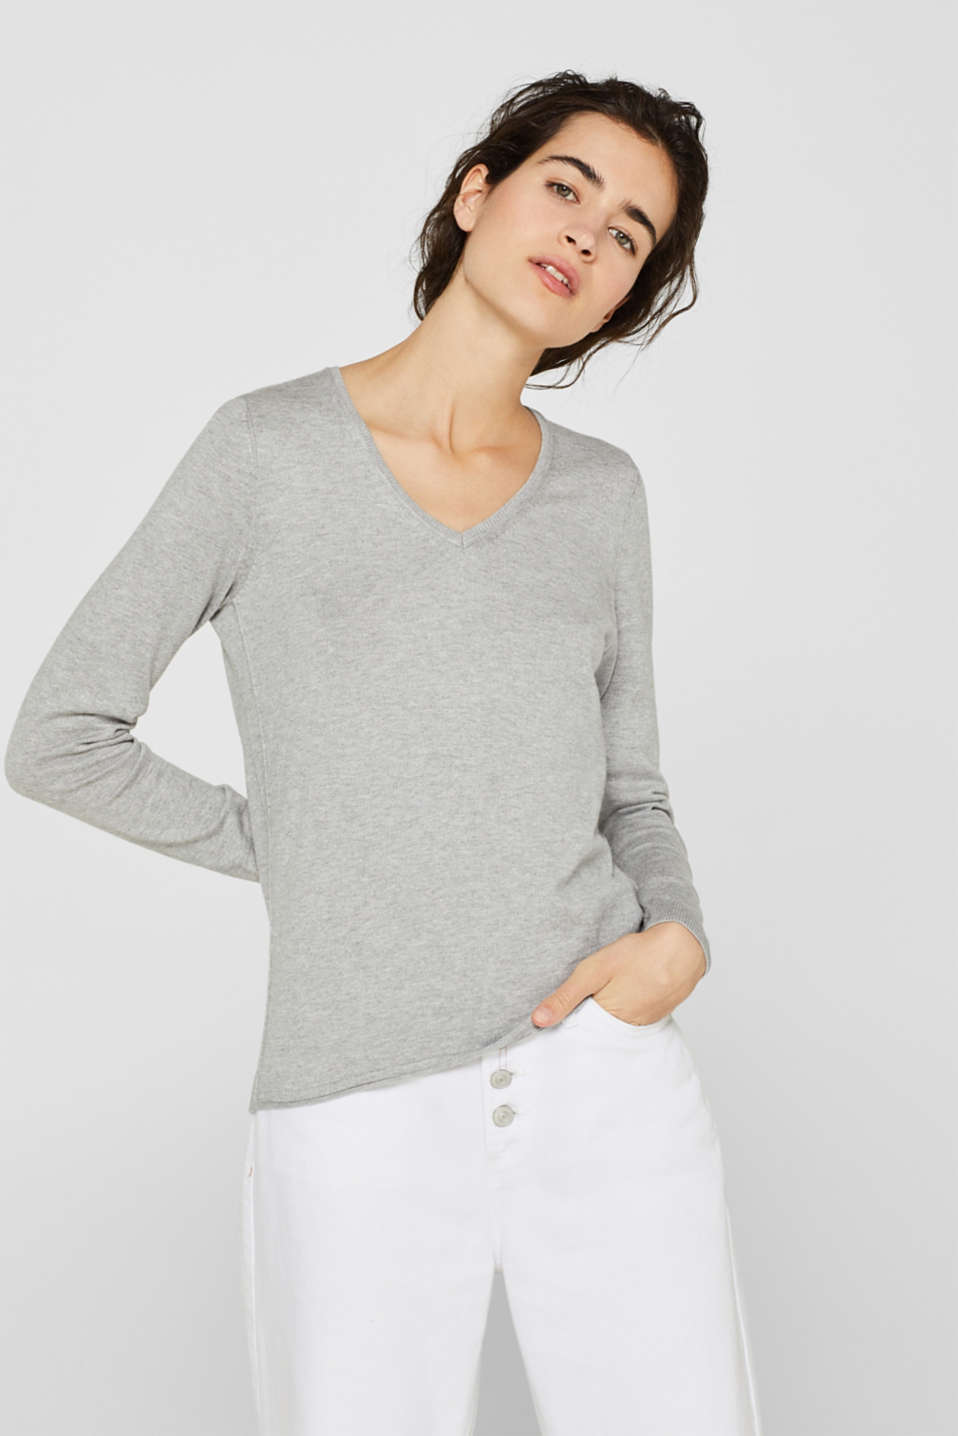 Jumper, organic cotton, LIGHT GREY 5, detail image number 0